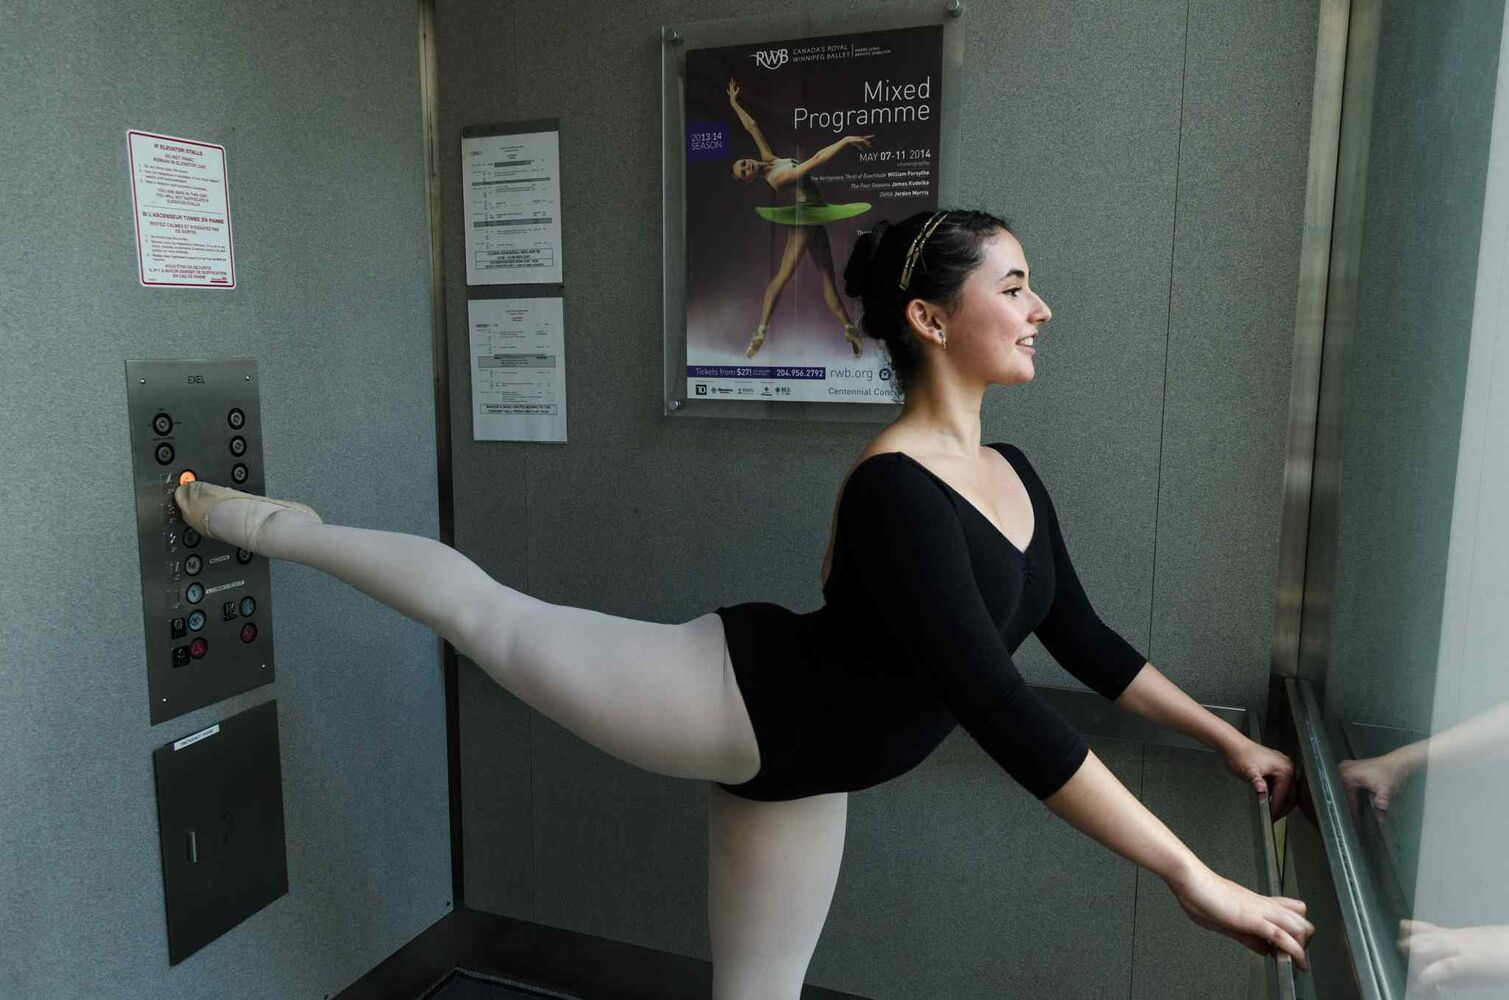 Adriana Ardila poses for a photo at the Royal Winnipeg Ballet school.  Ardila, who is originally from Colombia and now lives in Tallahassee, Florida, flew to Winnipeg for the audition. (EMILY CUMMING / WINNIPEG FREE PRESS)